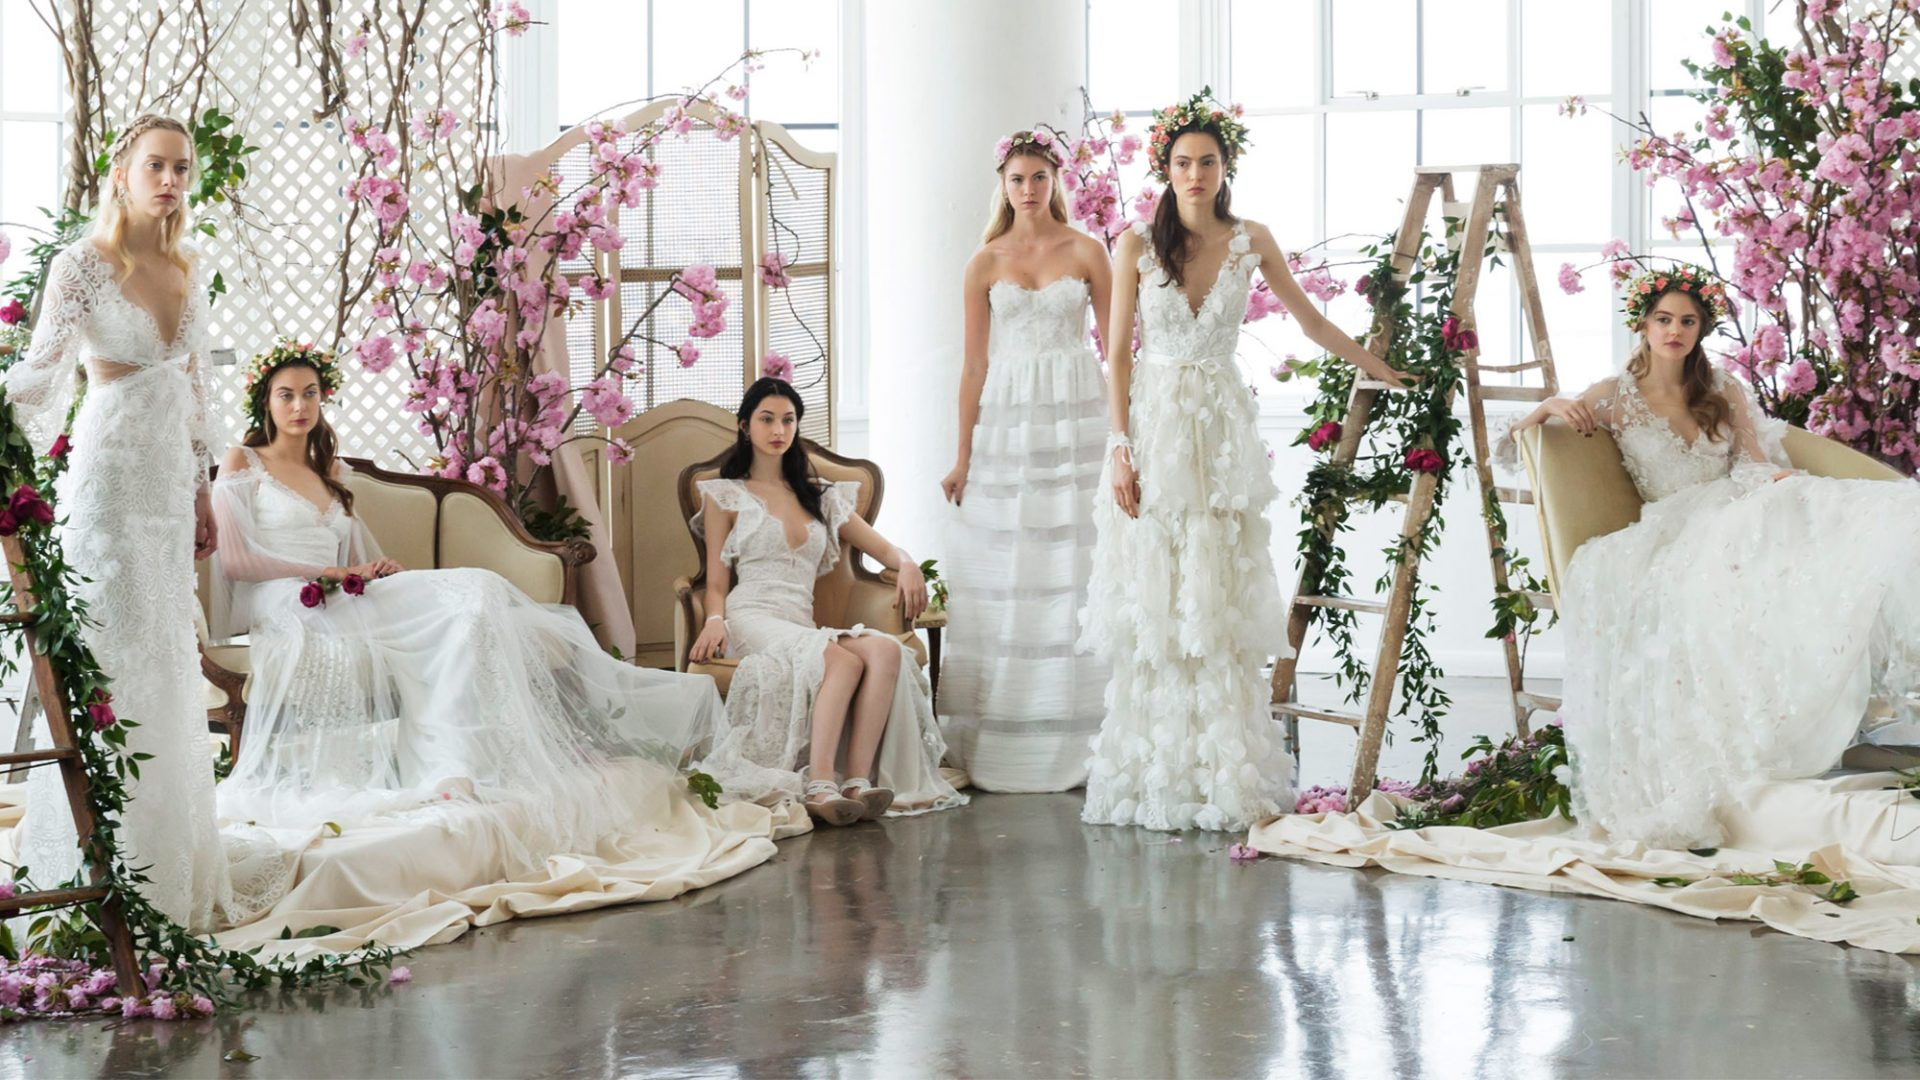 Beautiful Wedding Gowns: The Most Beautiful Wedding Dresses From Bridal Fashion Week